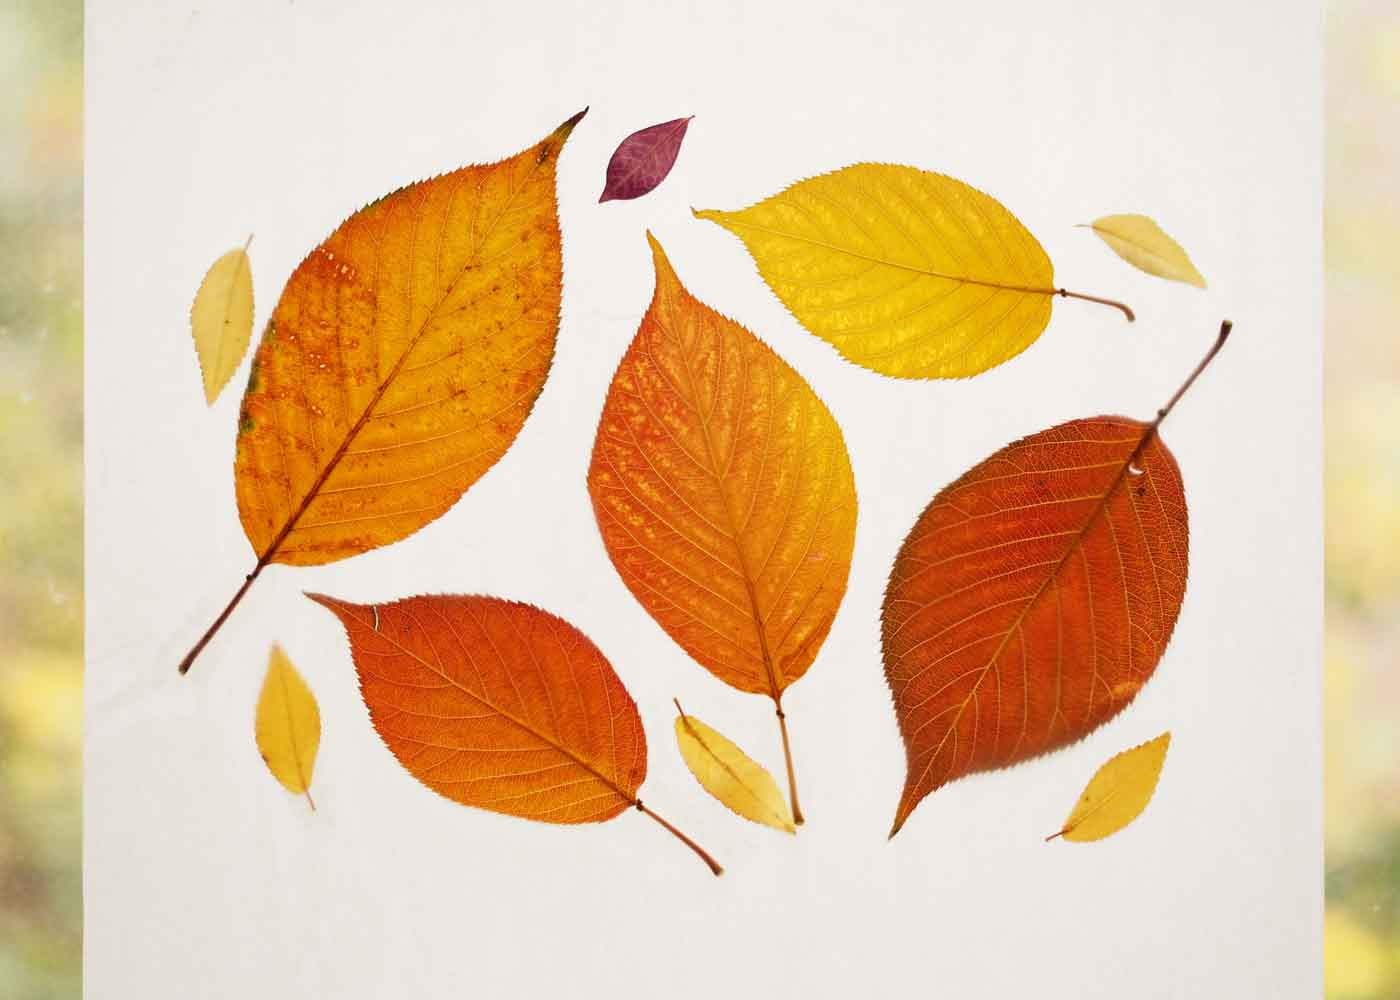 An orange and yellow leaf palette made this wax sheet pop.